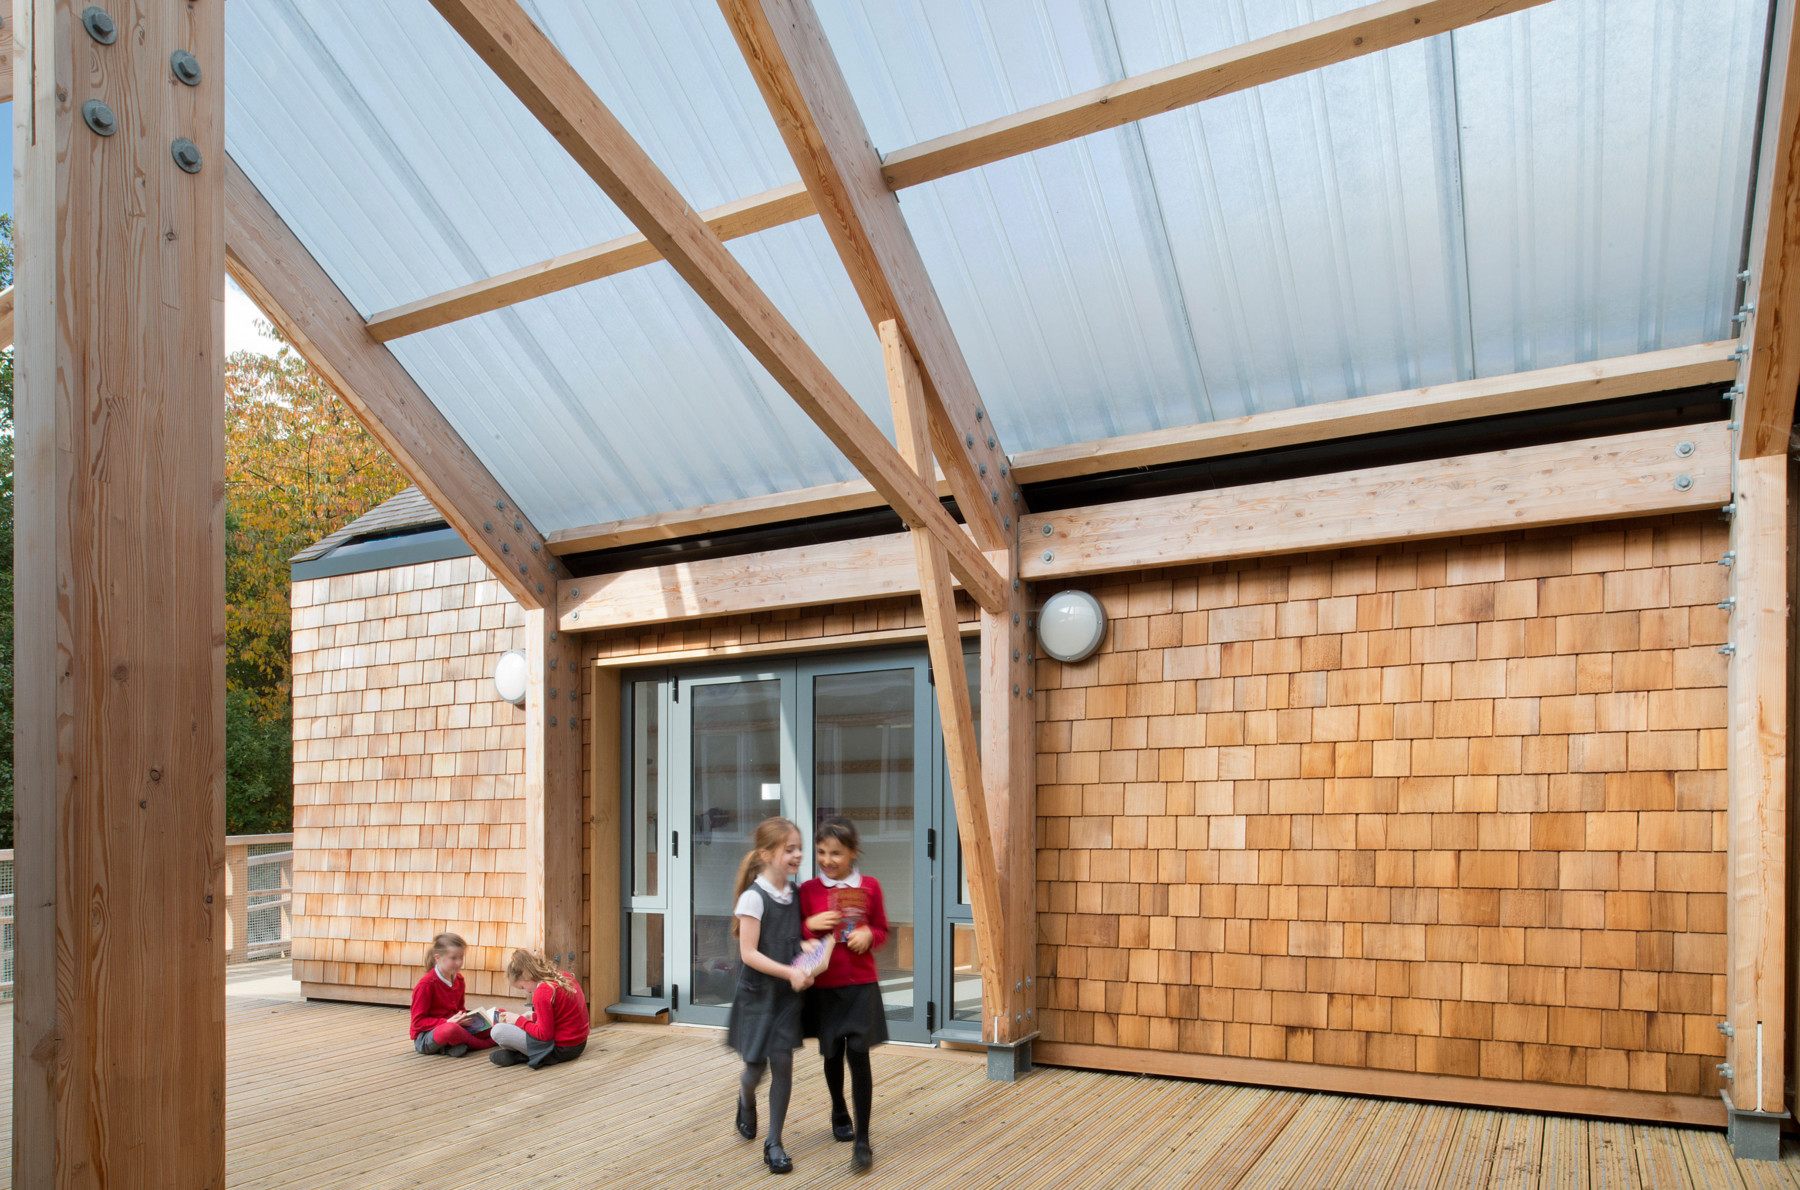 Sarah-Wigglesworth-Architects Mellor ForestDeck 3600